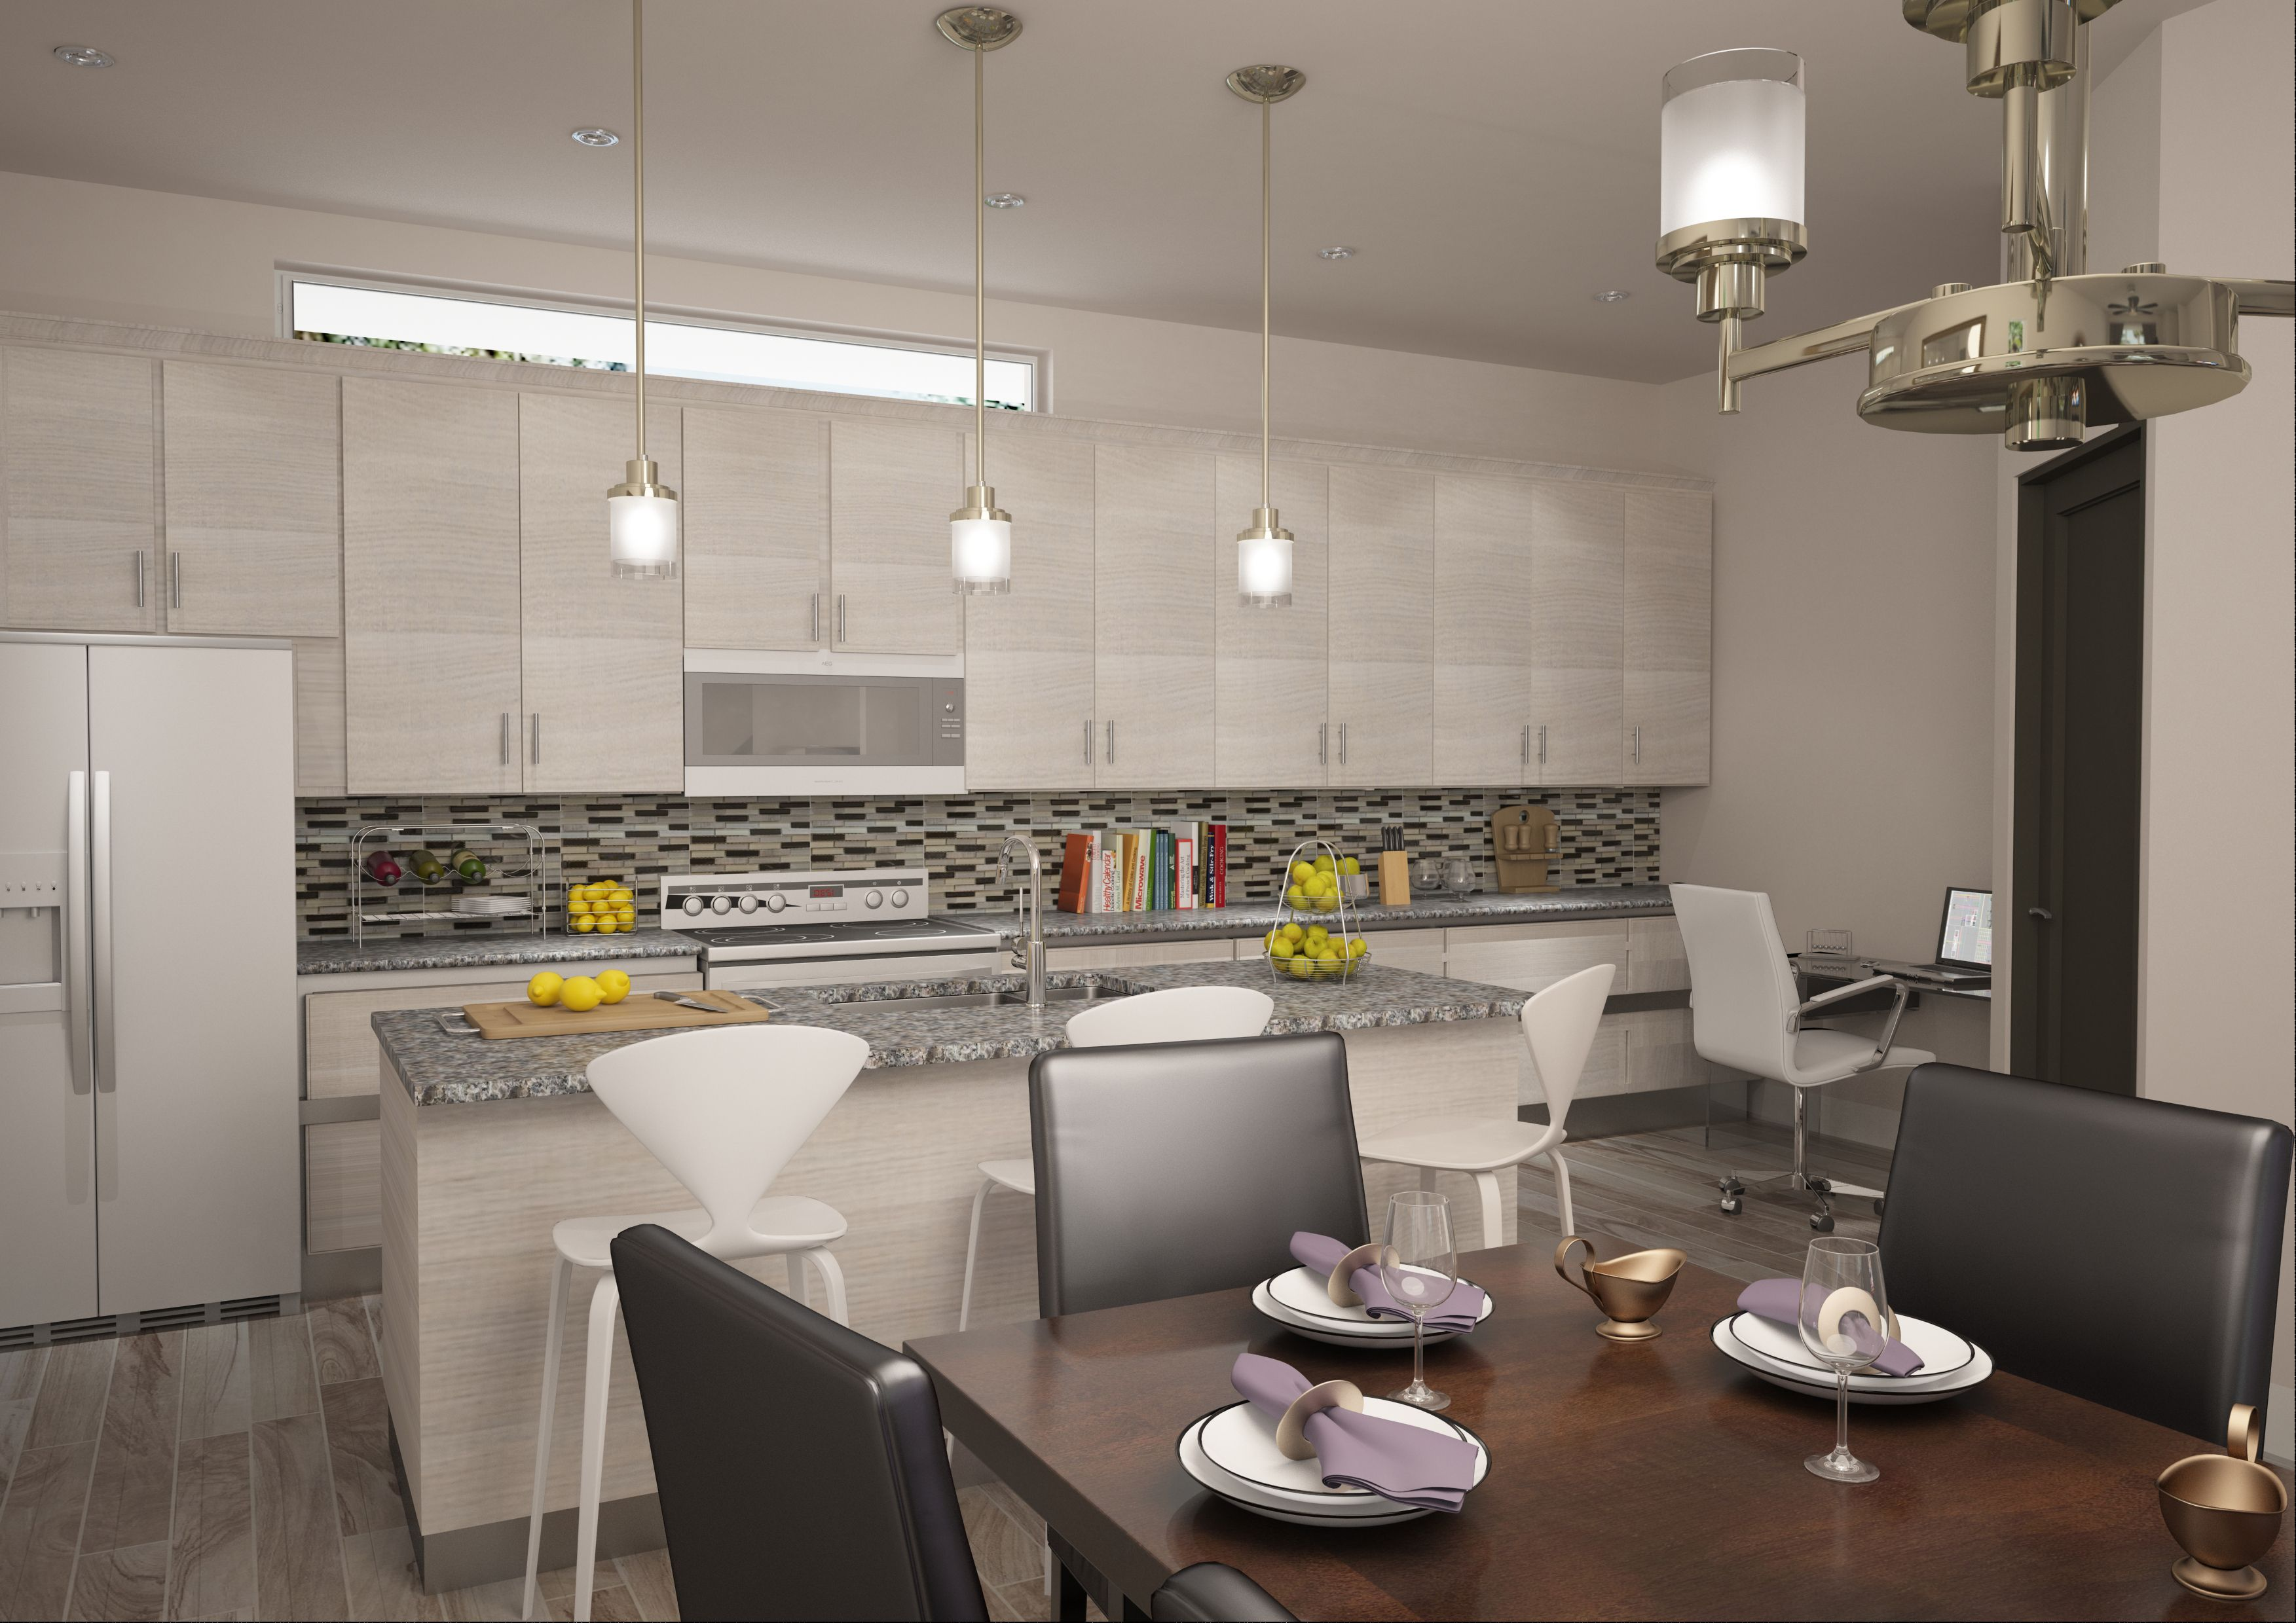 townhomes and condos for sale in tampa st petersburg fl from